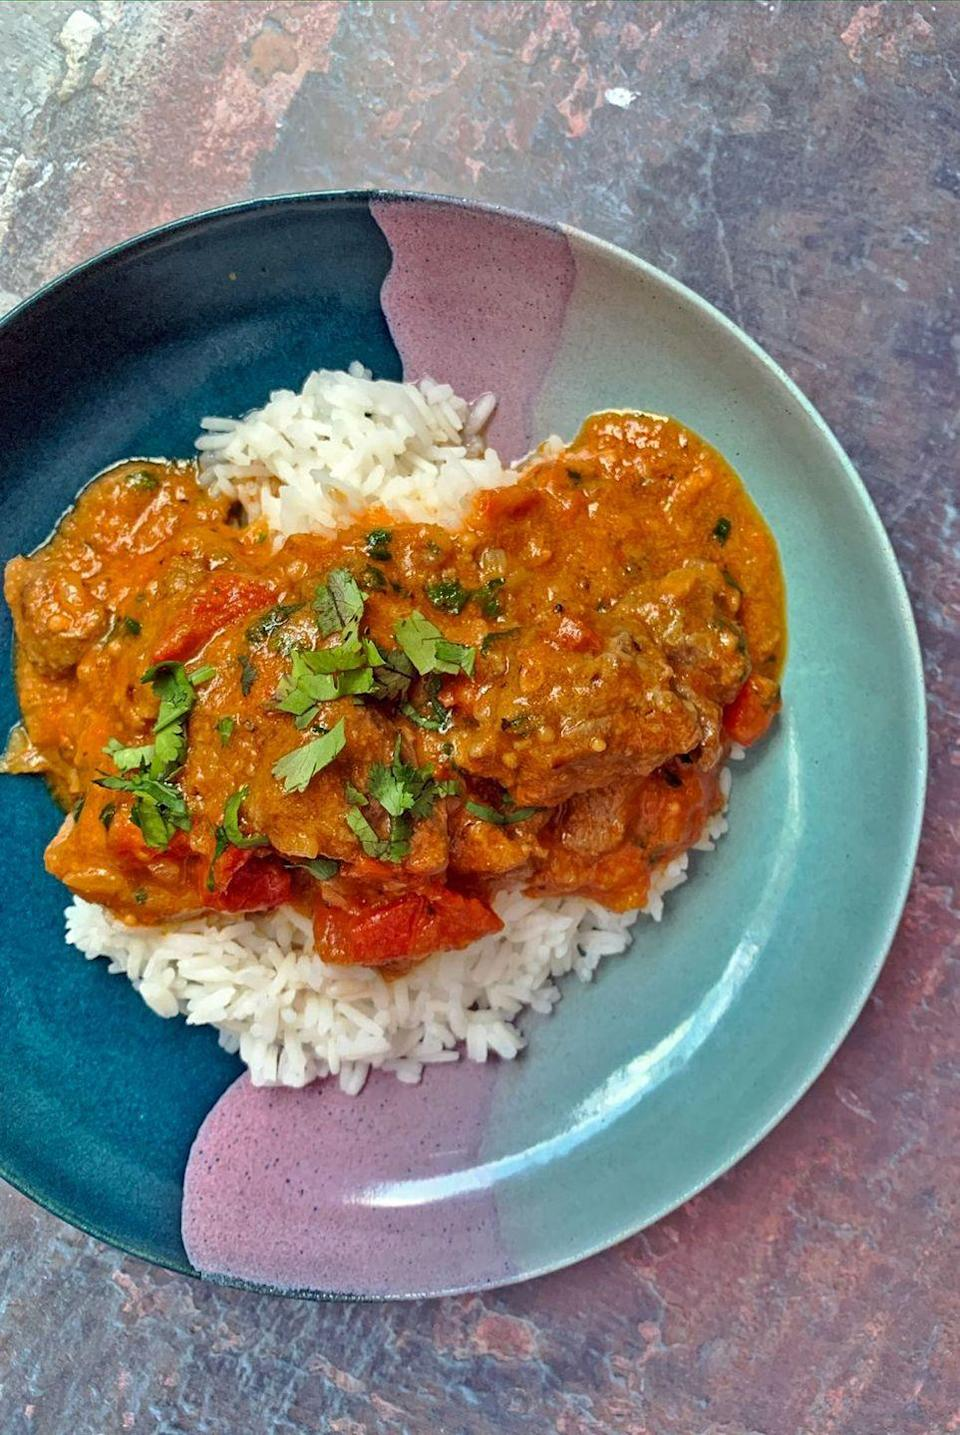 "<p>Lamb Karahi is one of our favourite <a href=""https://www.delish.com/uk/cooking/recipes/g33455599/best-curry-recipes/"" rel=""nofollow noopener"" target=""_blank"" data-ylk=""slk:lamb curry"" class=""link rapid-noclick-resp"">lamb curry</a> dishes, and we're telling you now, it is well worth the time and effort to make.</p><p>Get the <a href=""https://www.delish.com/uk/cooking/recipes/a33642009/lamb-karahi/"" rel=""nofollow noopener"" target=""_blank"" data-ylk=""slk:Lamb Karahi"" class=""link rapid-noclick-resp"">Lamb Karahi</a> recipe.</p>"